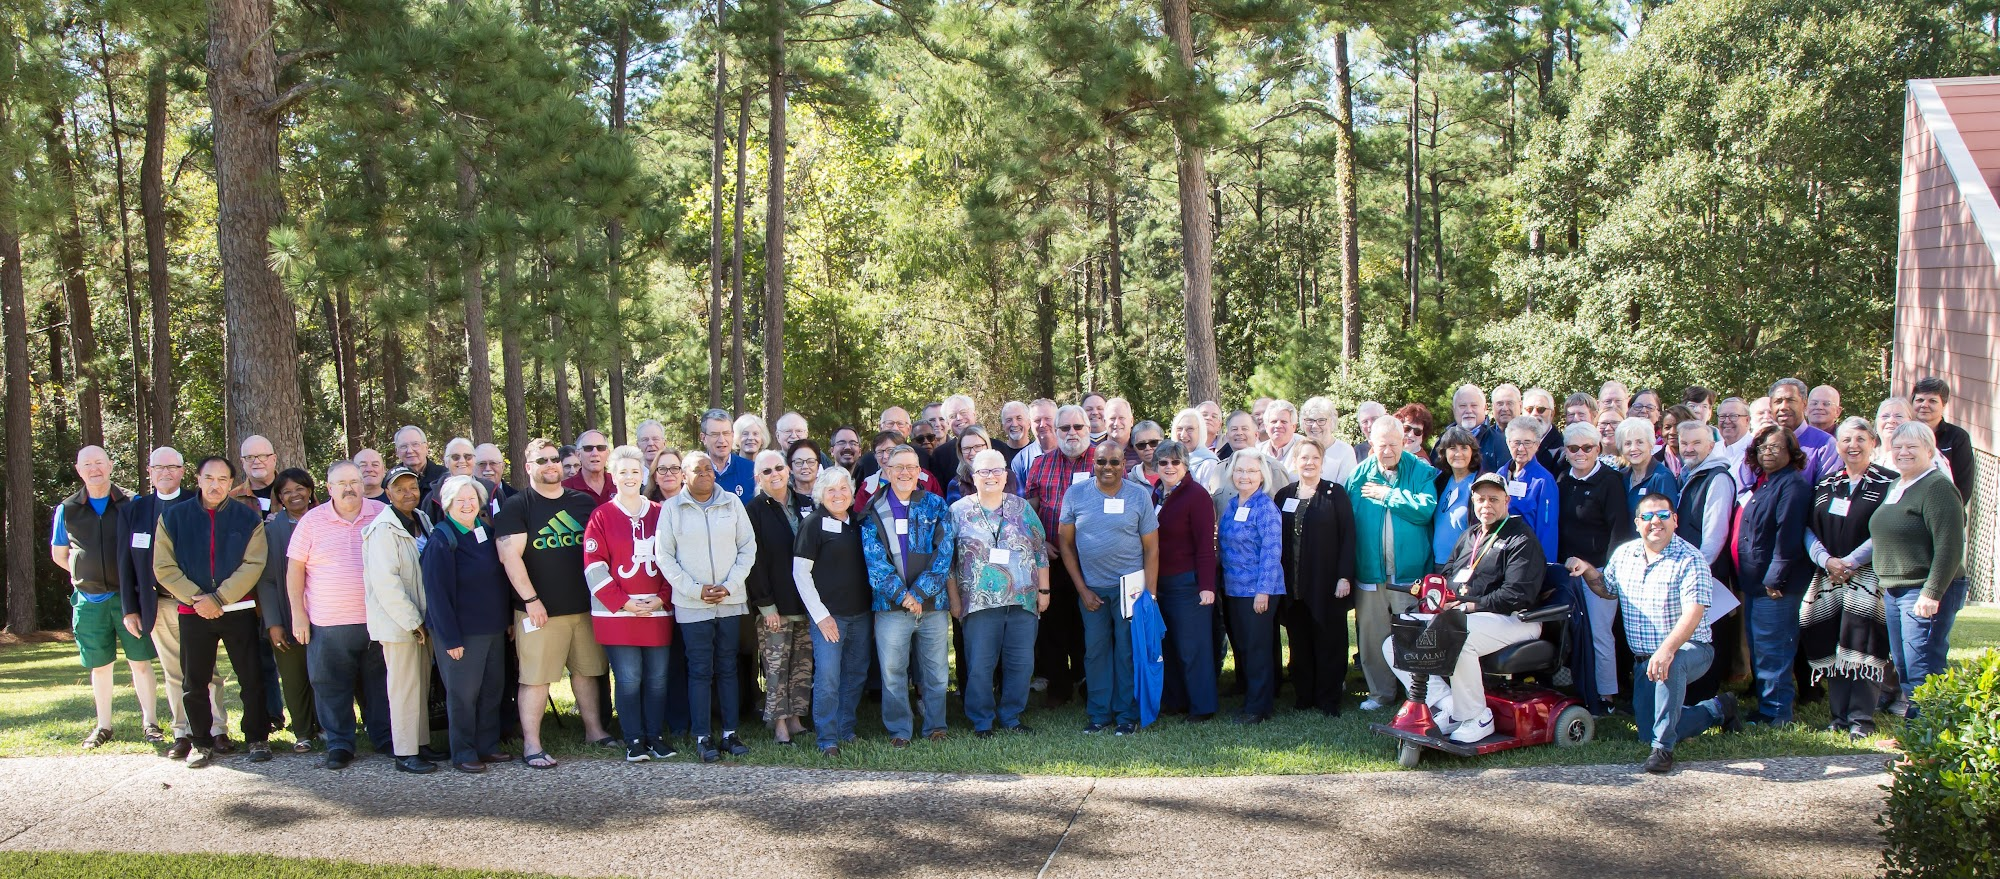 2019 VGEC Annual Conference Retreat at Camp Allan